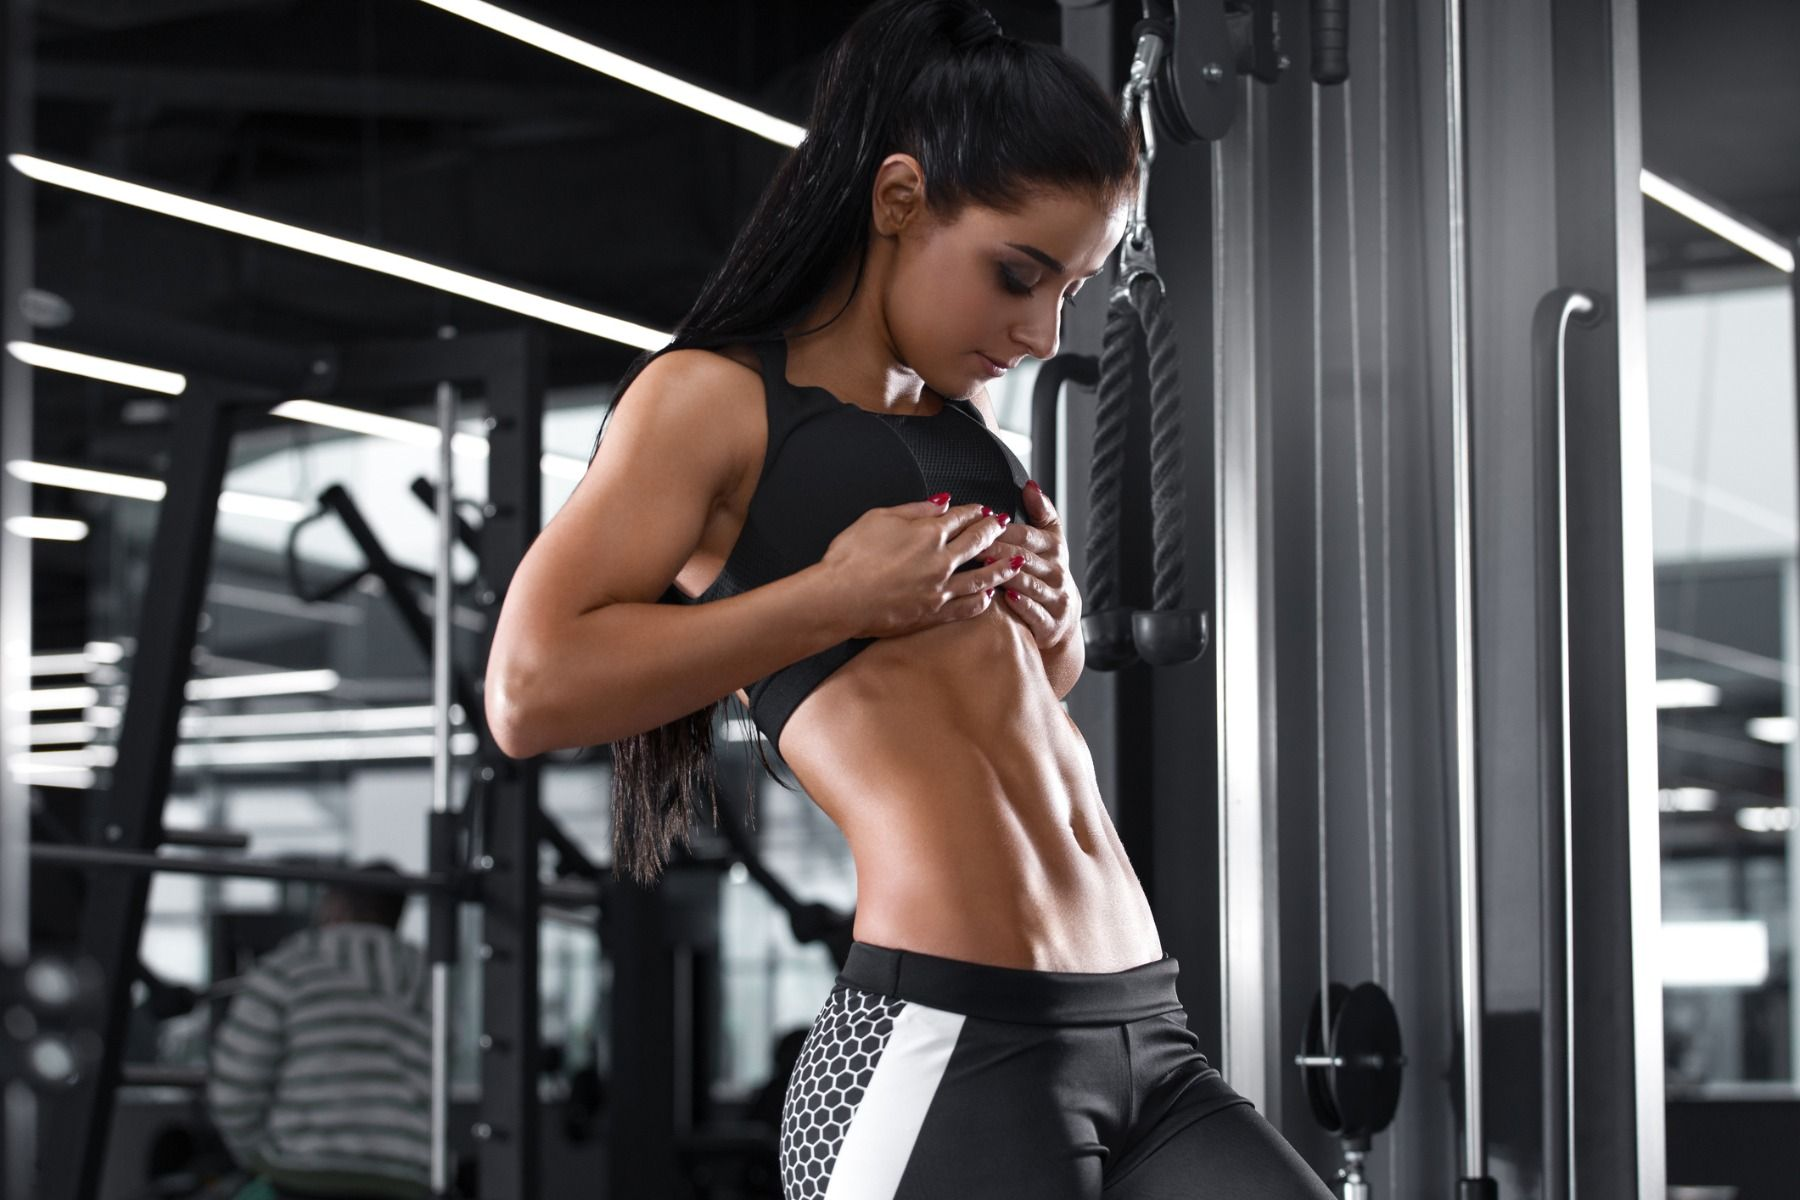 The 8 best exercises to shape and tone muscles